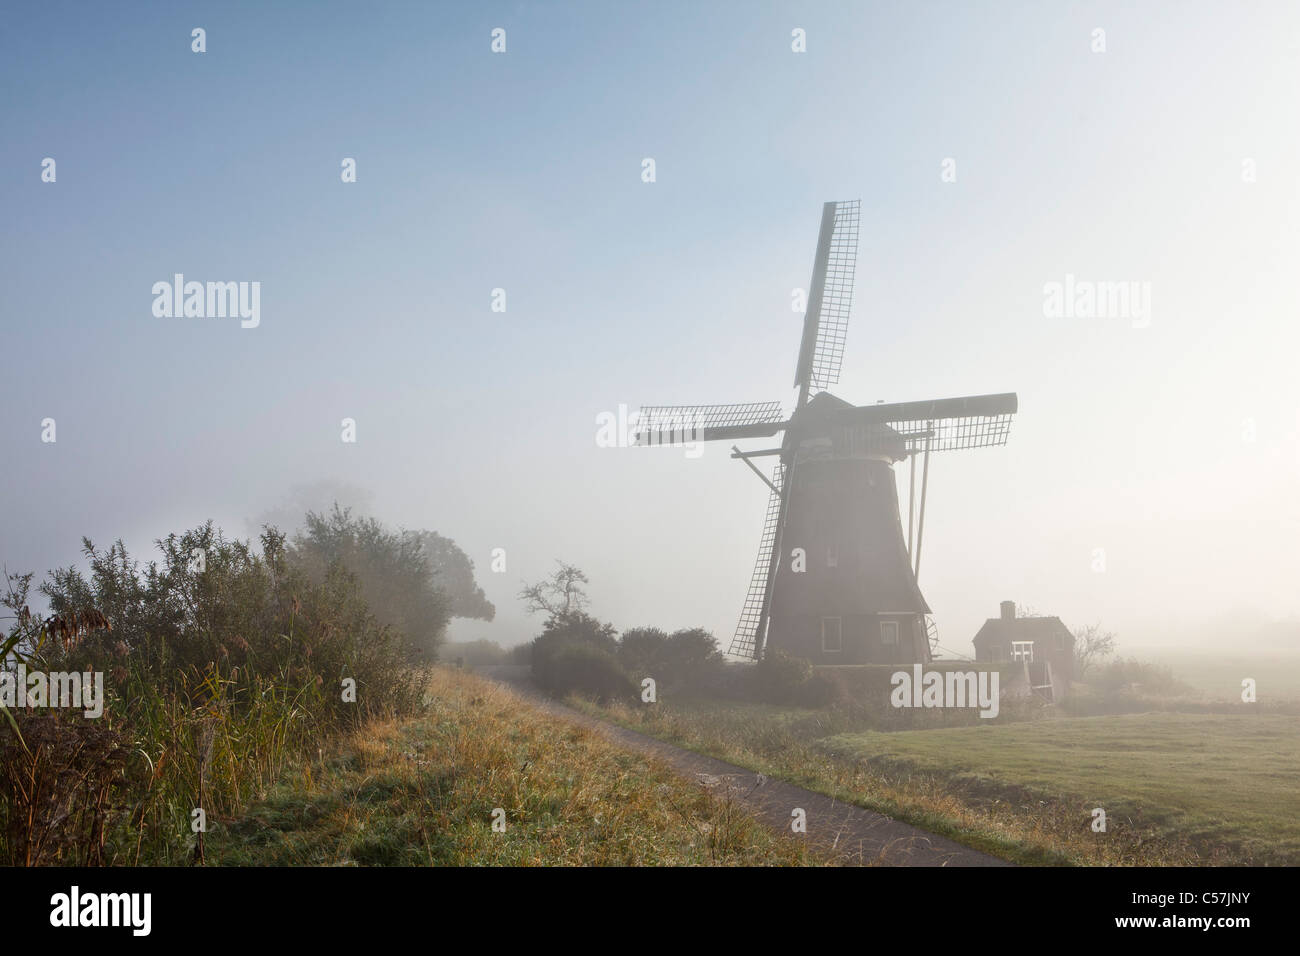 The Netherlands, Nigtevecht, Windmill in morning mist. - Stock Image